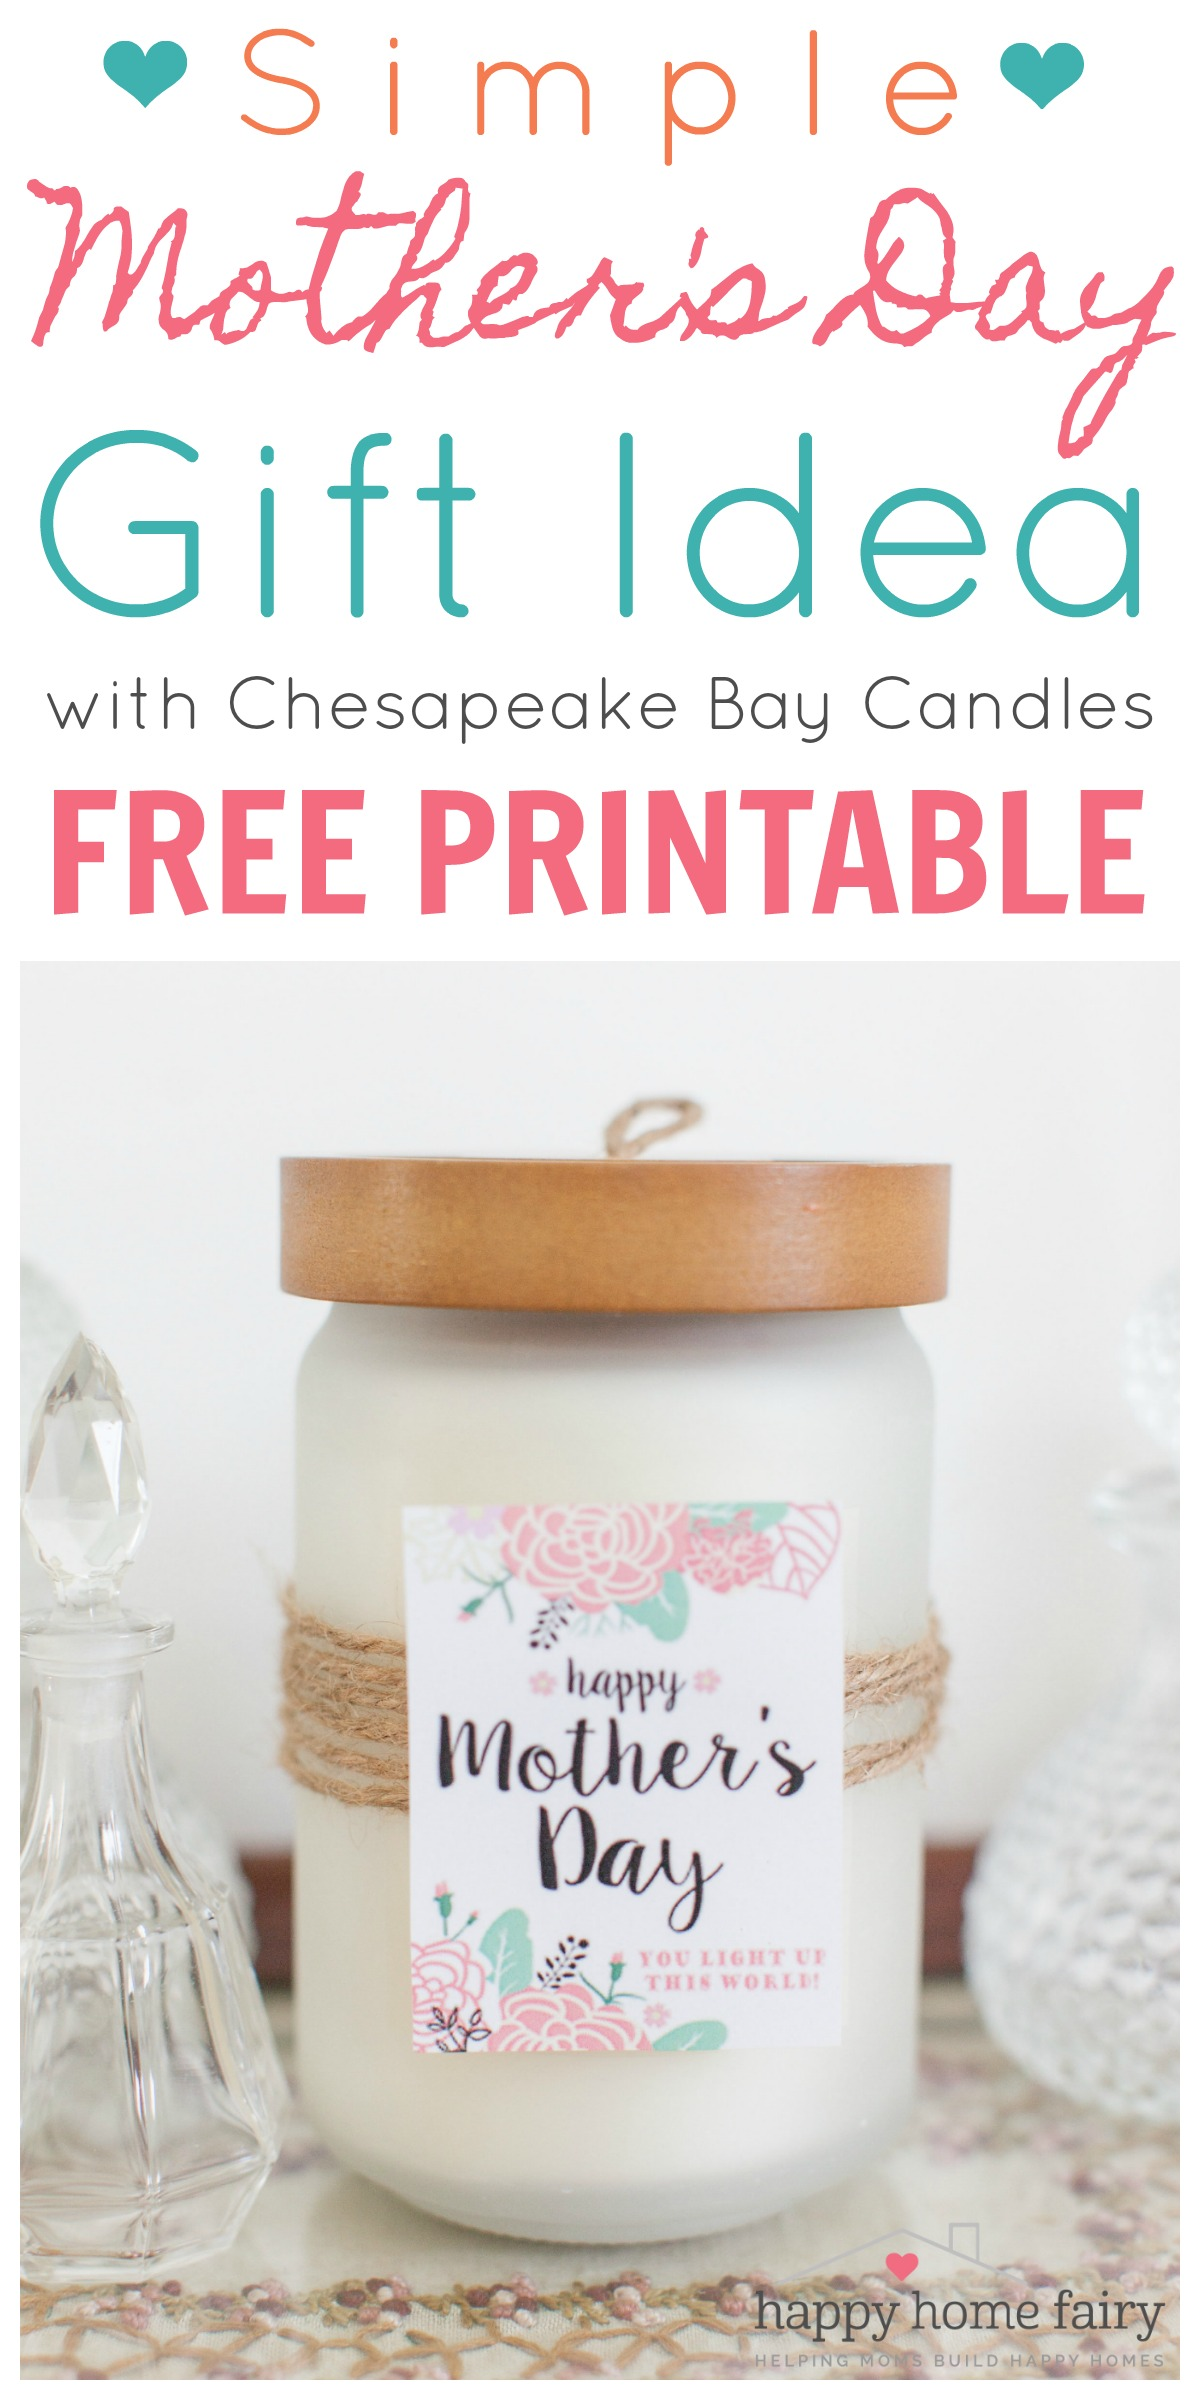 Simple Mother\'s Day Gift Idea - FREE Printable! - Happy Home Fairy